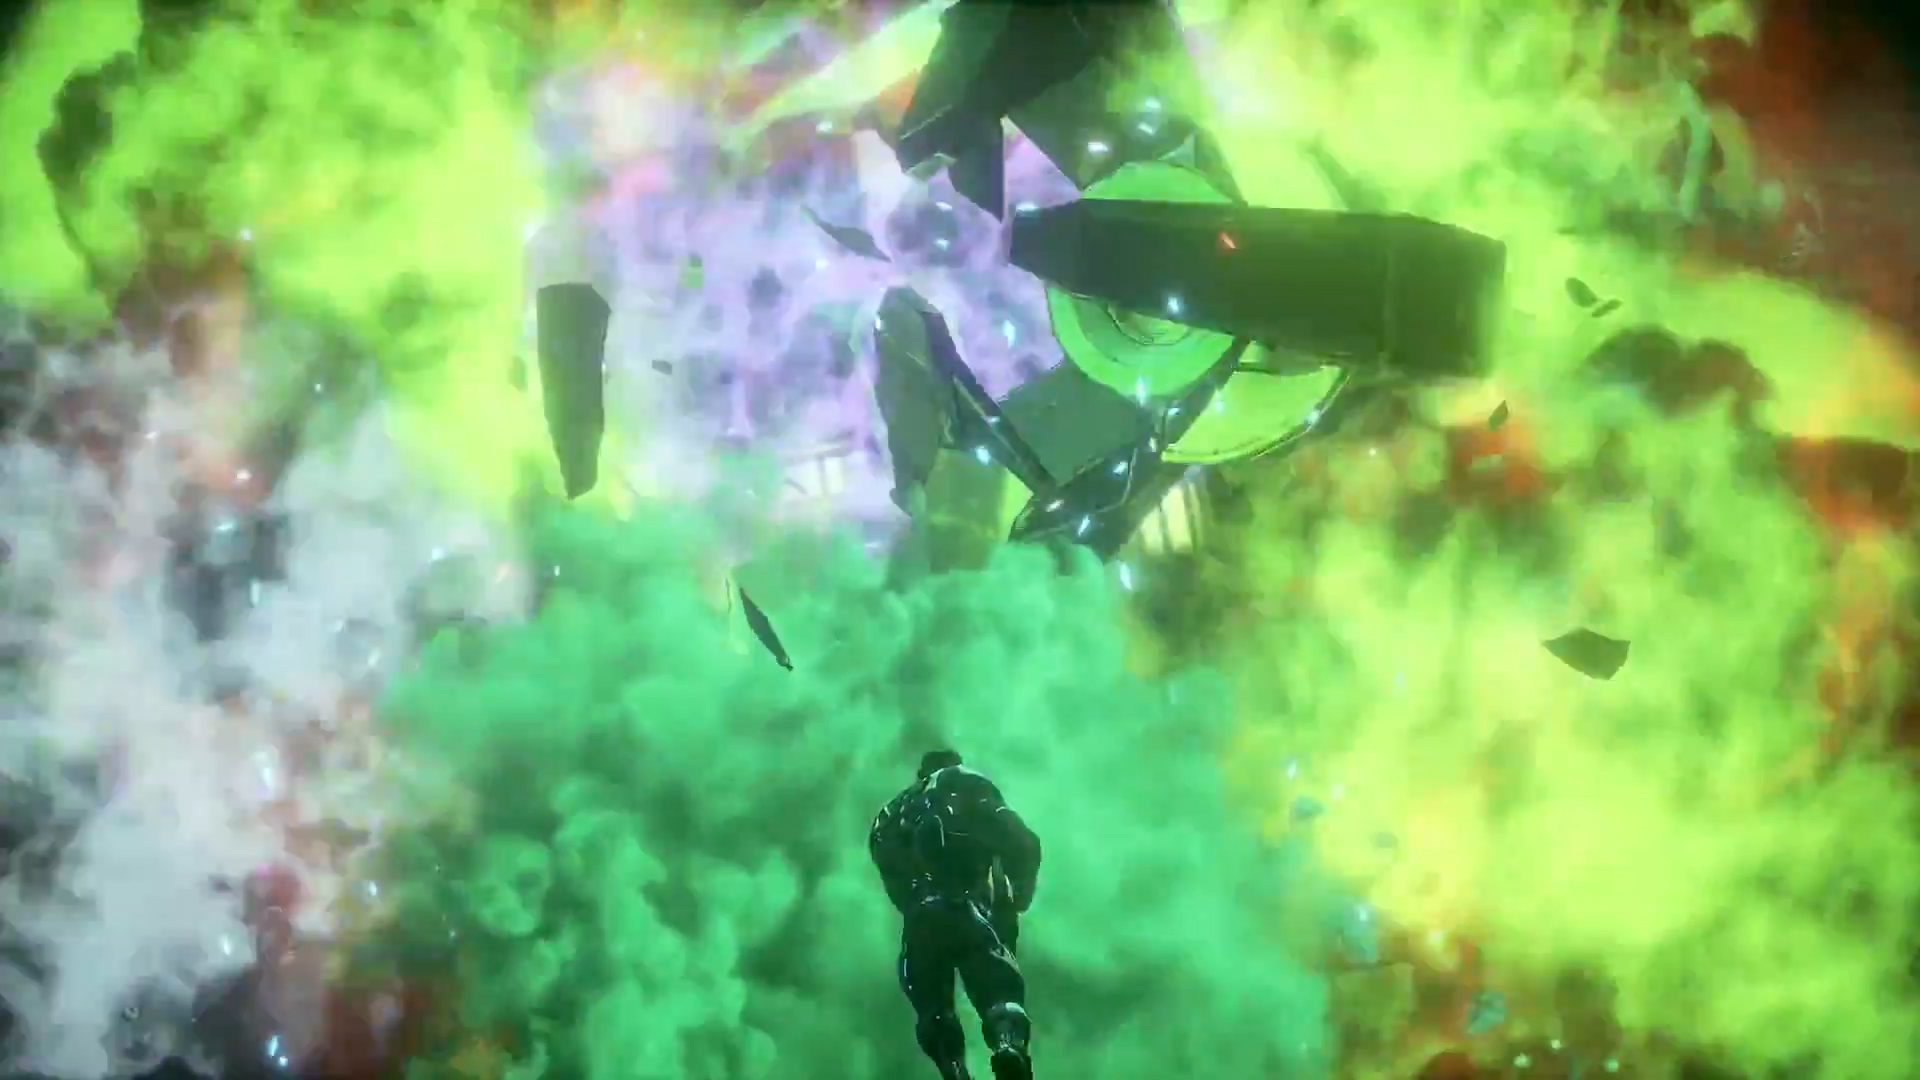 Colorful Explosions